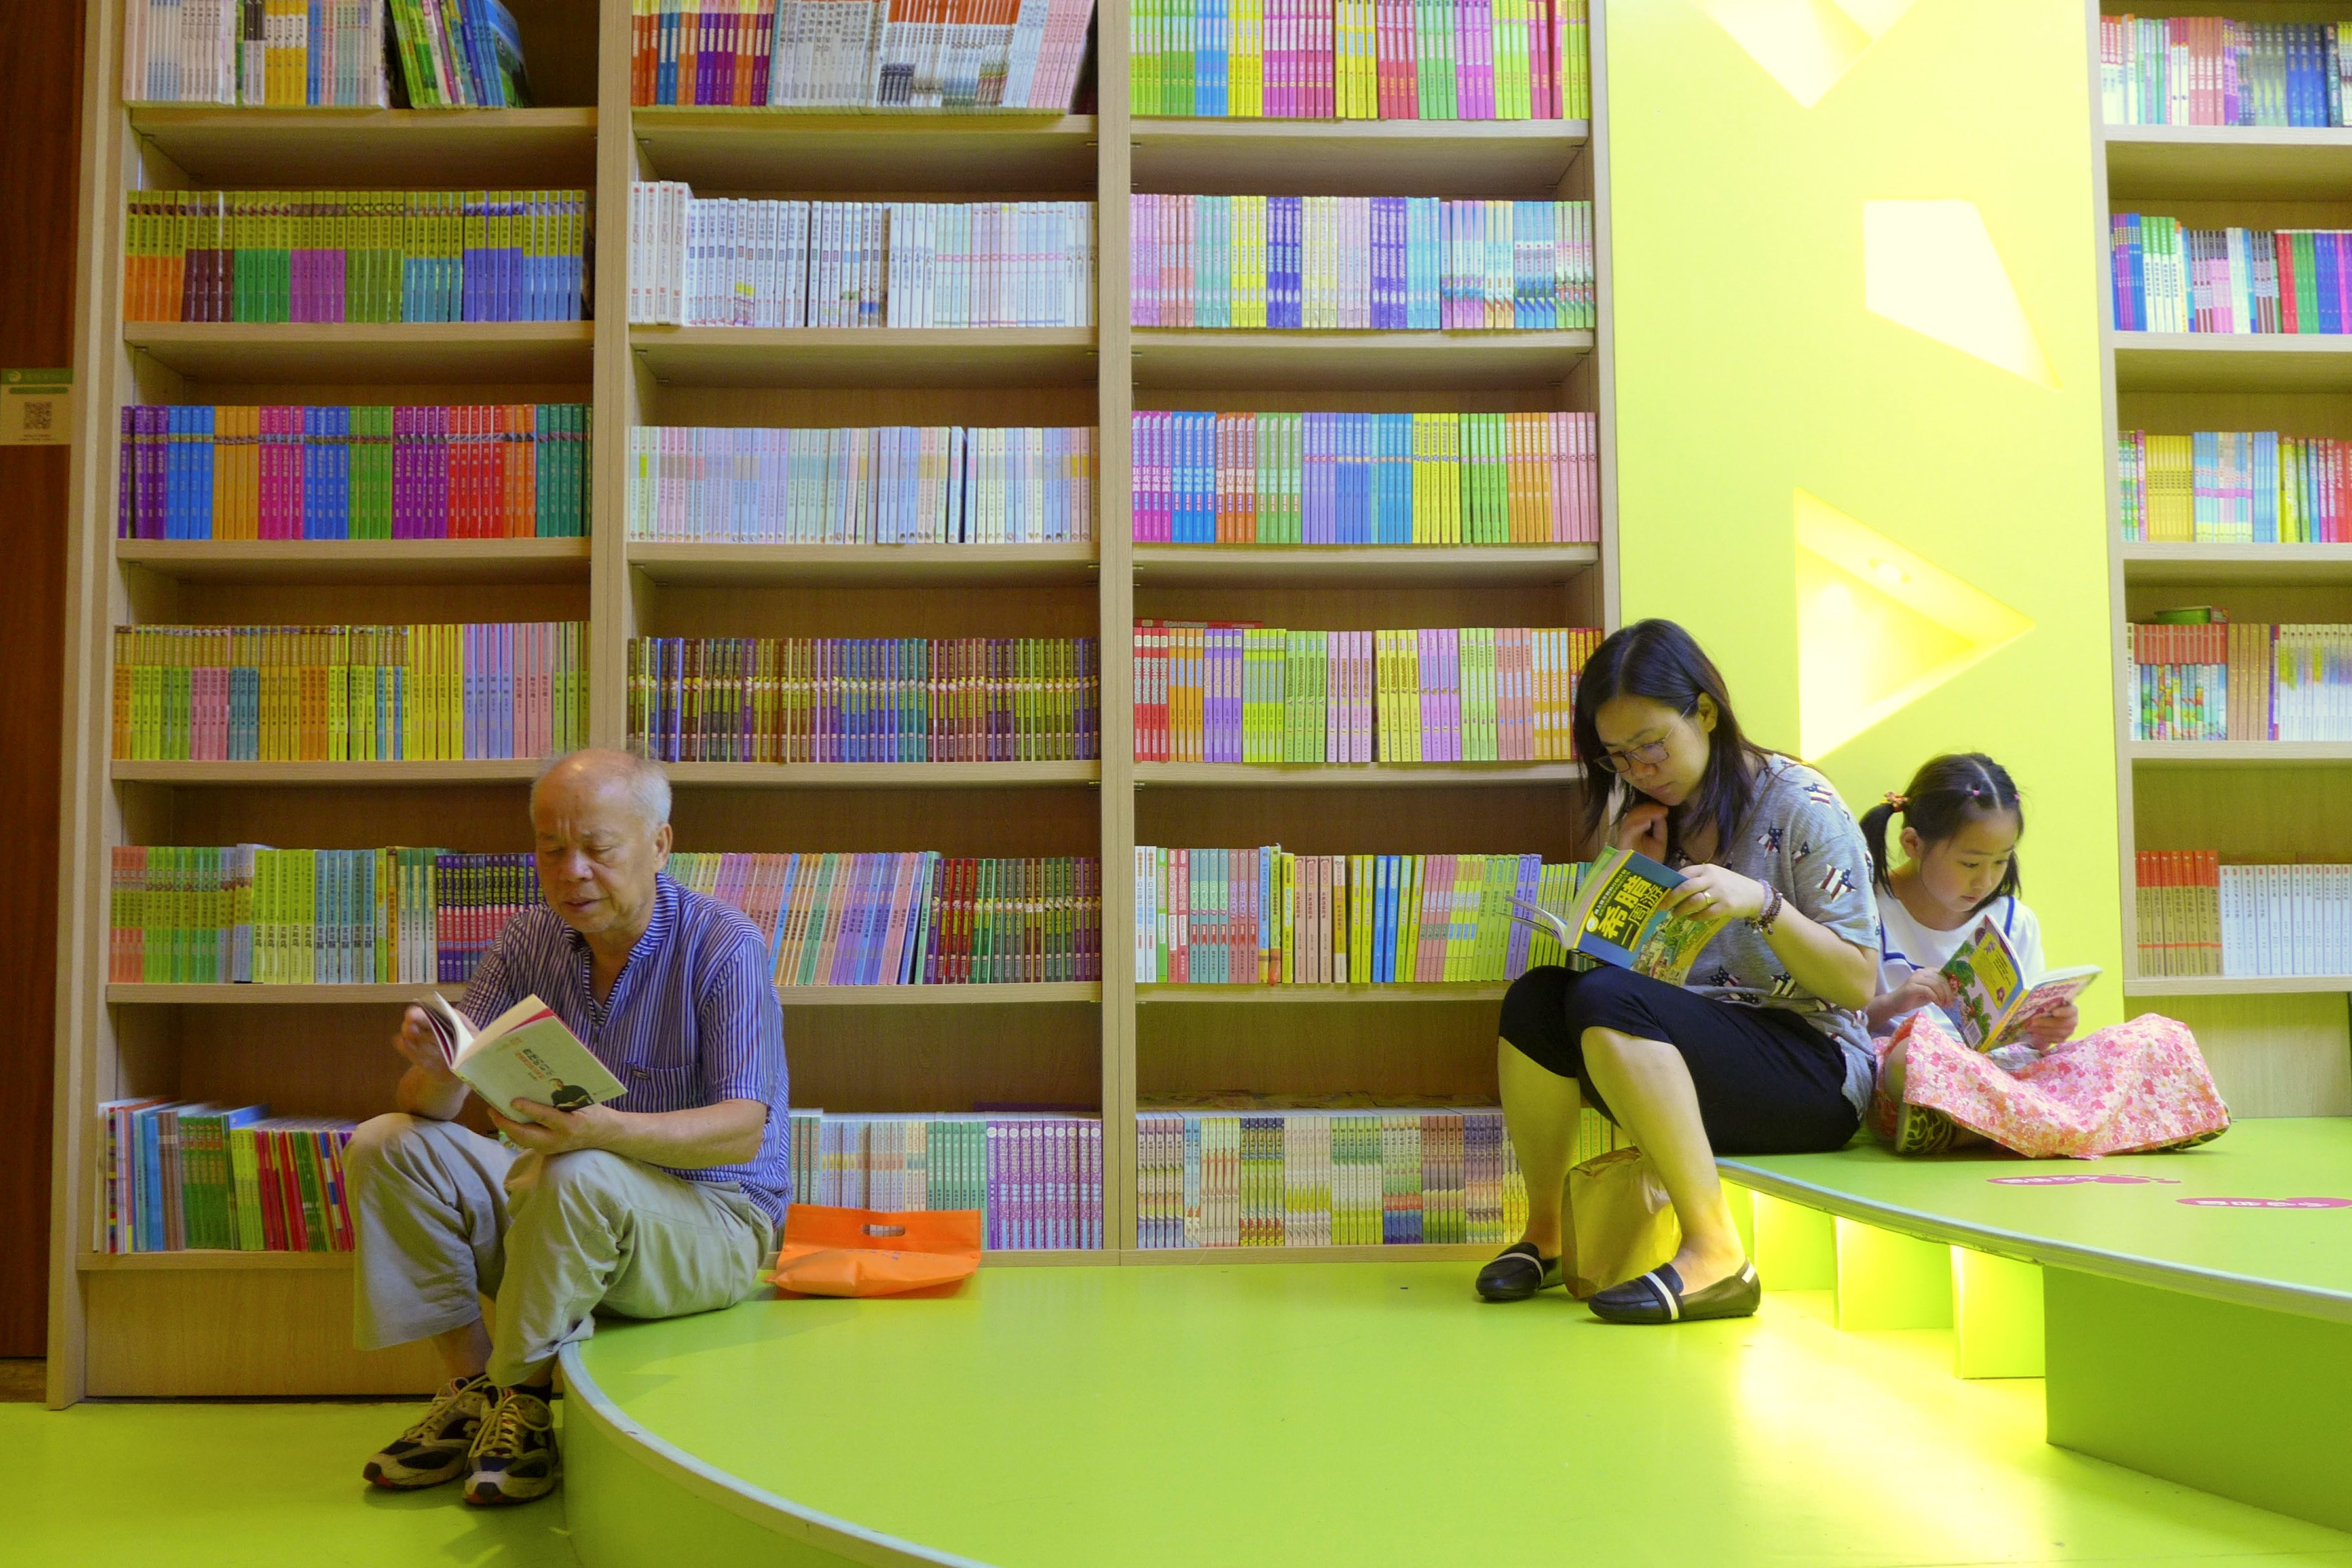 Local residents of all ages enjoy reading in bookstores. — Wang Rongjiang